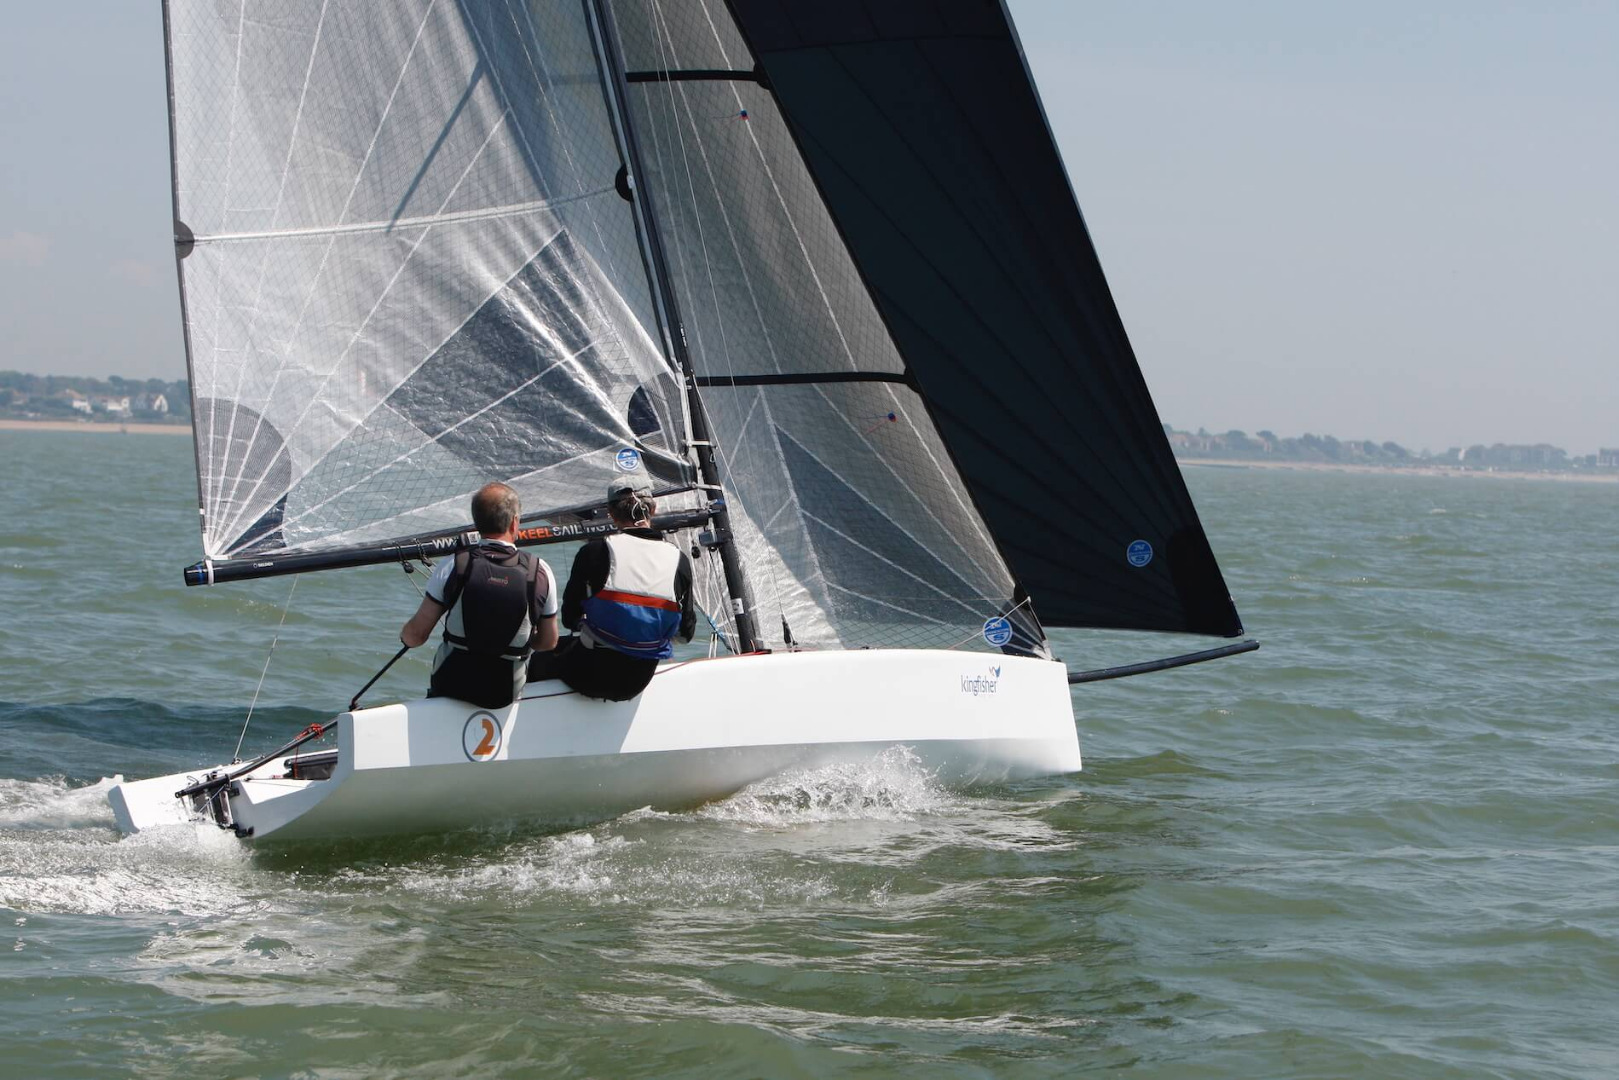 Acting as a design consultancy the 5.6m, the SK2 is the smallest keel boat design we've been. We had a small part to play as consultant naval architects and designers, refining the keel design and engineering after the initial prototype of this one design sports boat / dinghy was built.